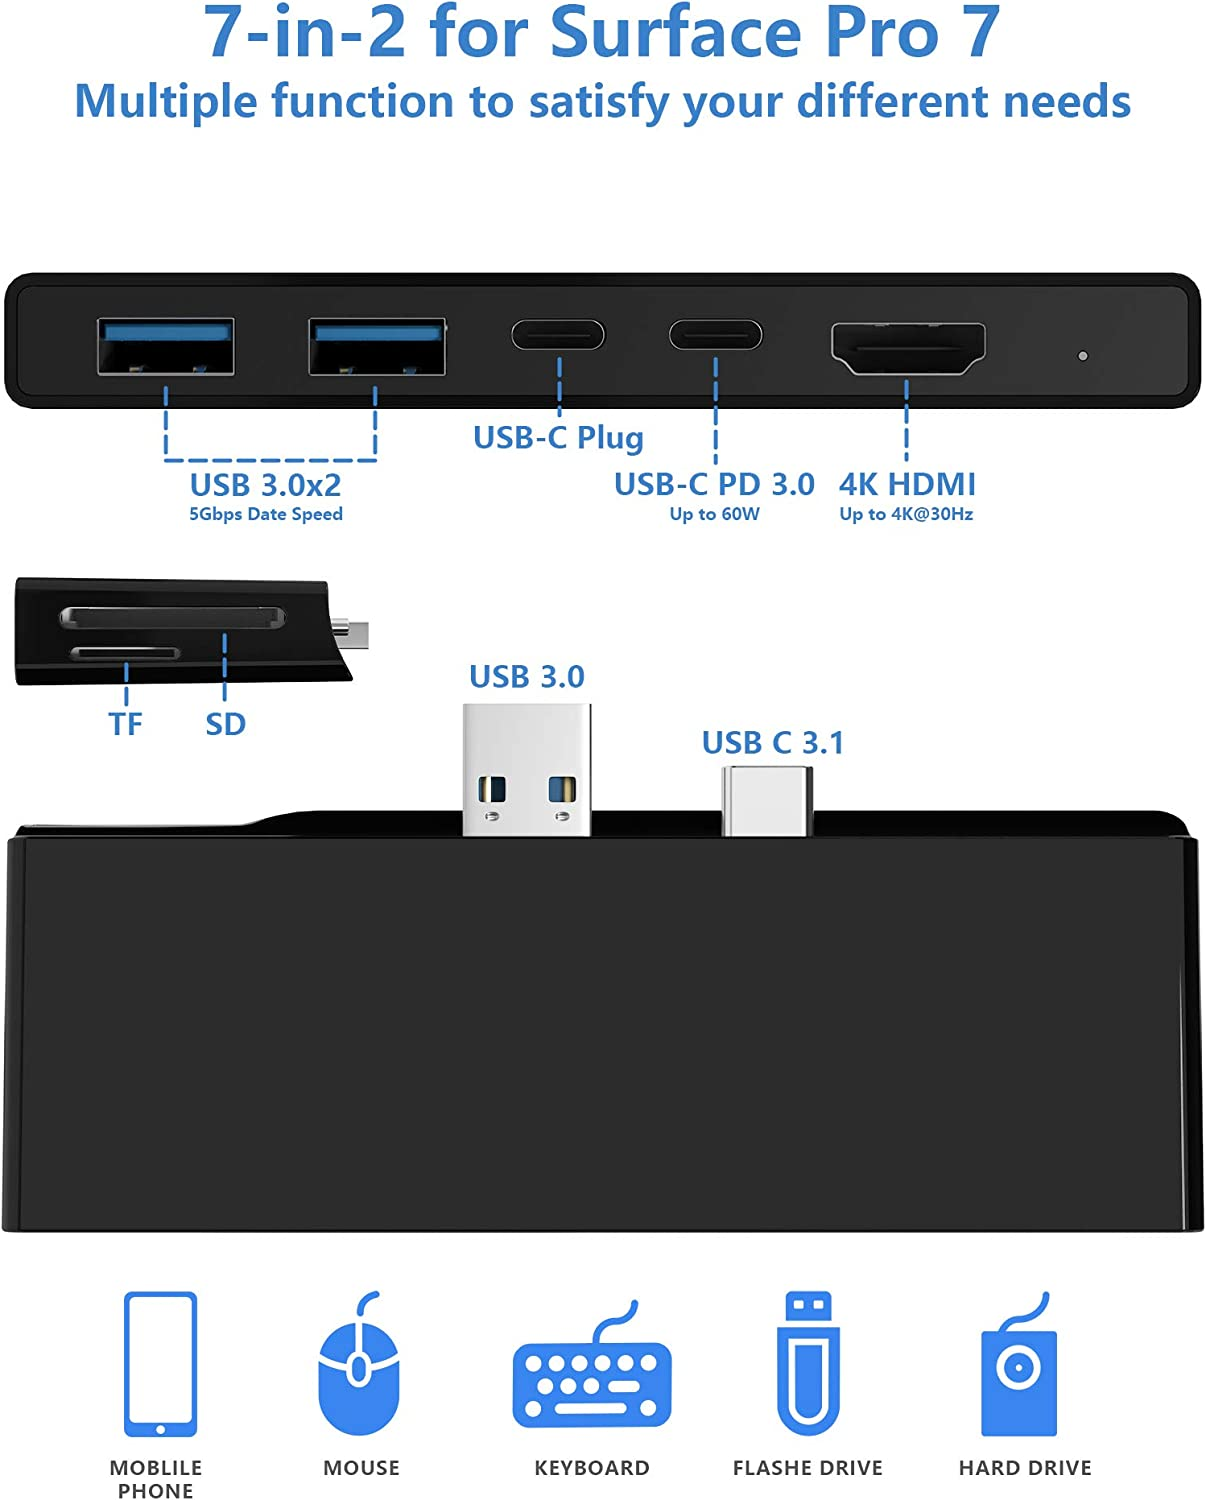 Micro SD USB C 5Gbps Data Port Surface Pro 7 Hub Docking Station with 4K HDMI Adapter+USB C PD 60W Charging port 2 Port USB 3.0+SD//TF Card Reader Converter Combo Adaptor for Microsoft Surface Pro 7